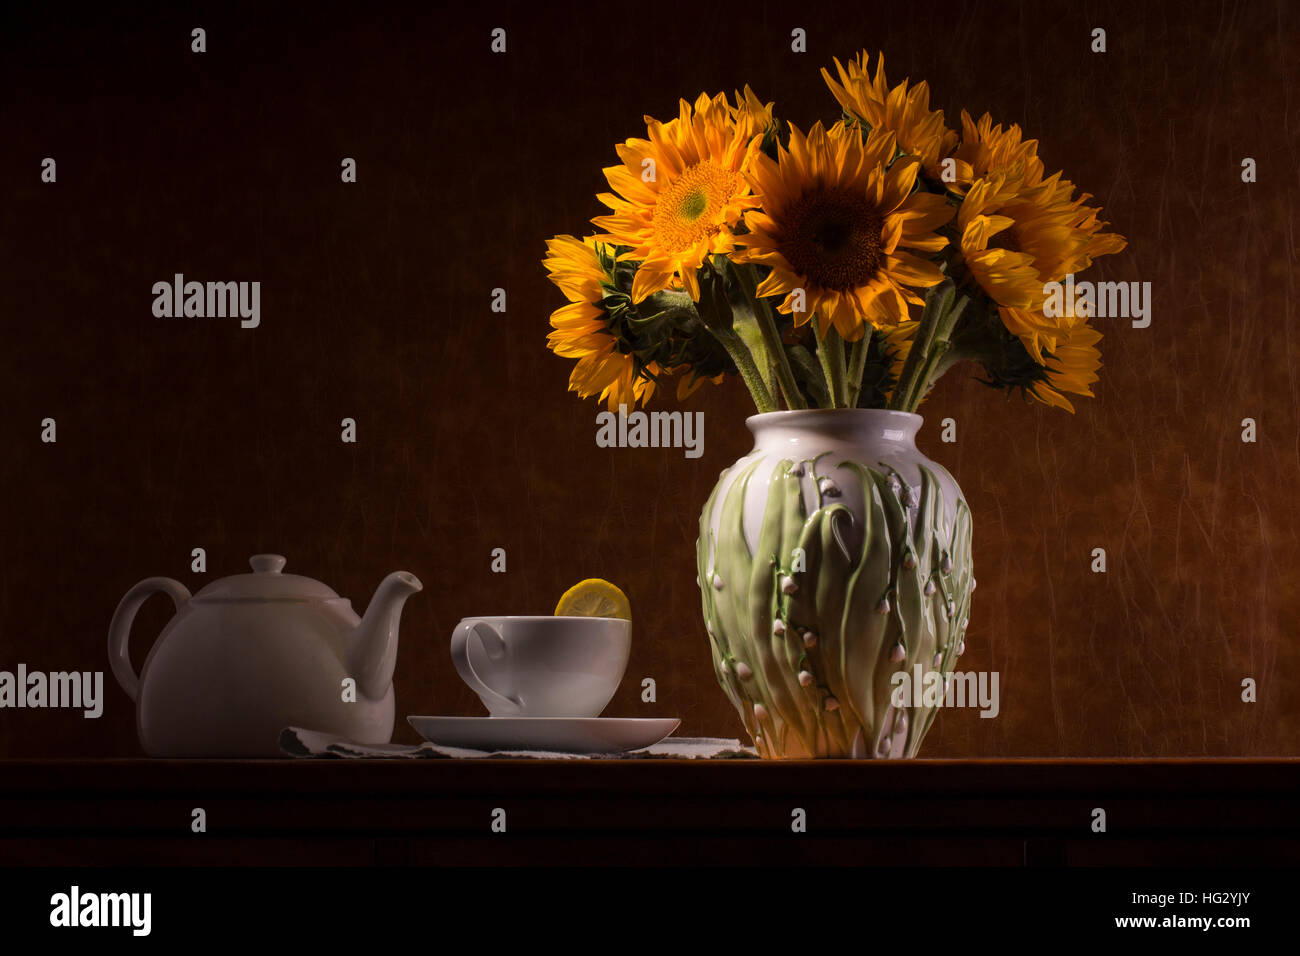 Still Life With Sunflowers Teacup And Teapot